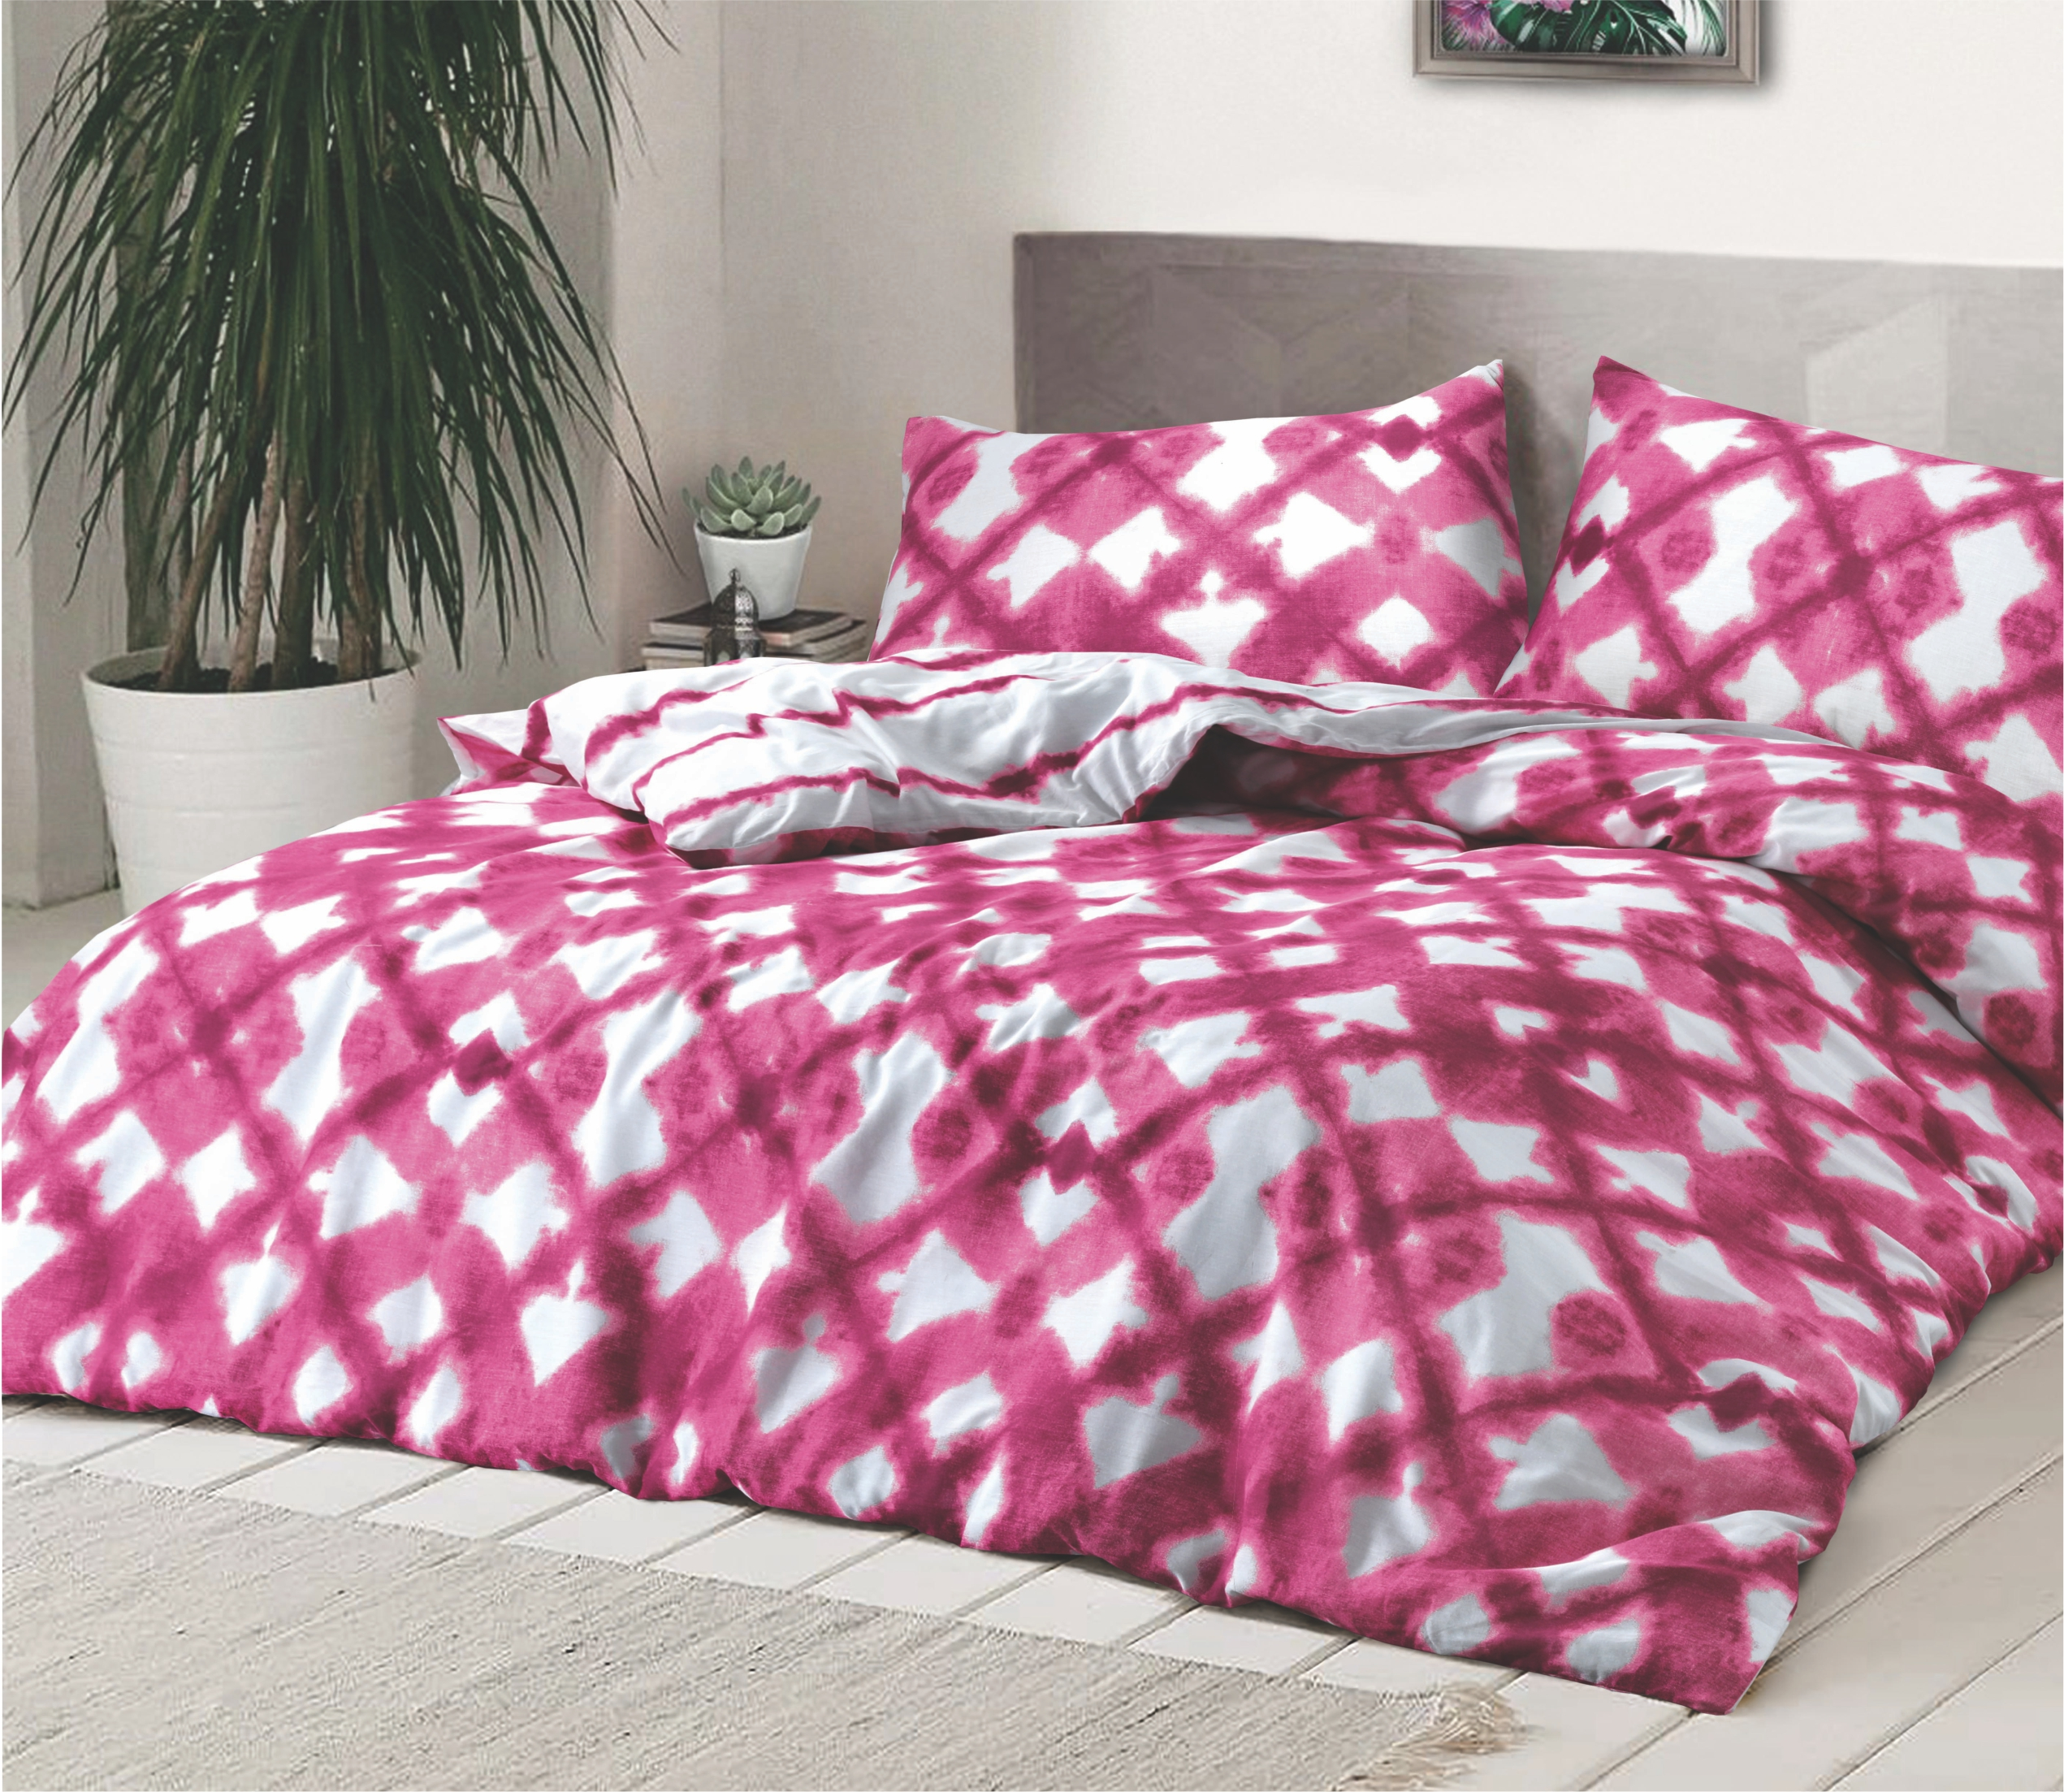 a to perfect pretty cover mood for pin pink duvet camomiles covers the on in get